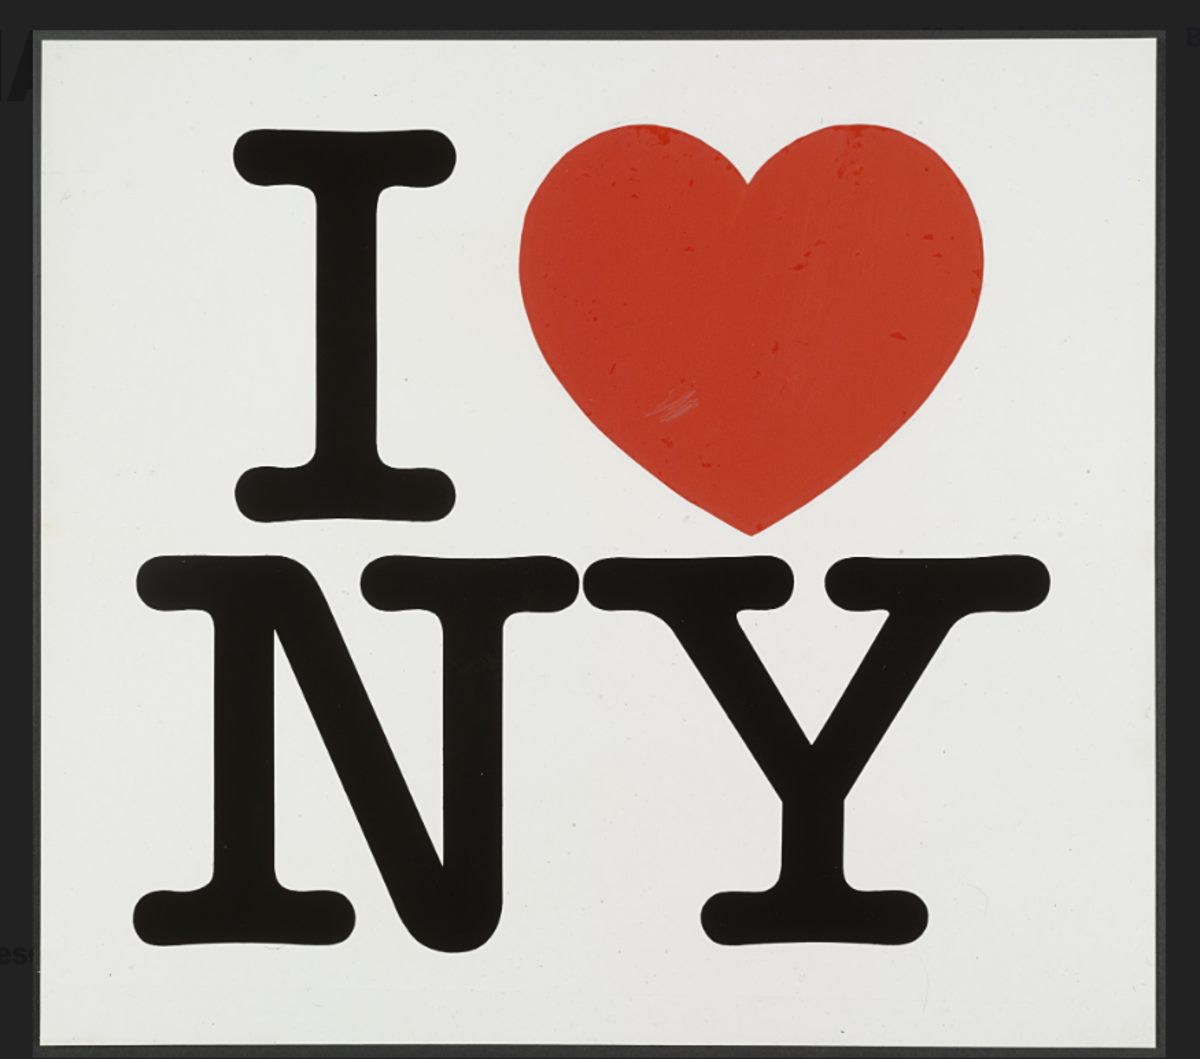 Created for a New York tourism campaign, the logo is now as recognizable as any New York tourist stop.